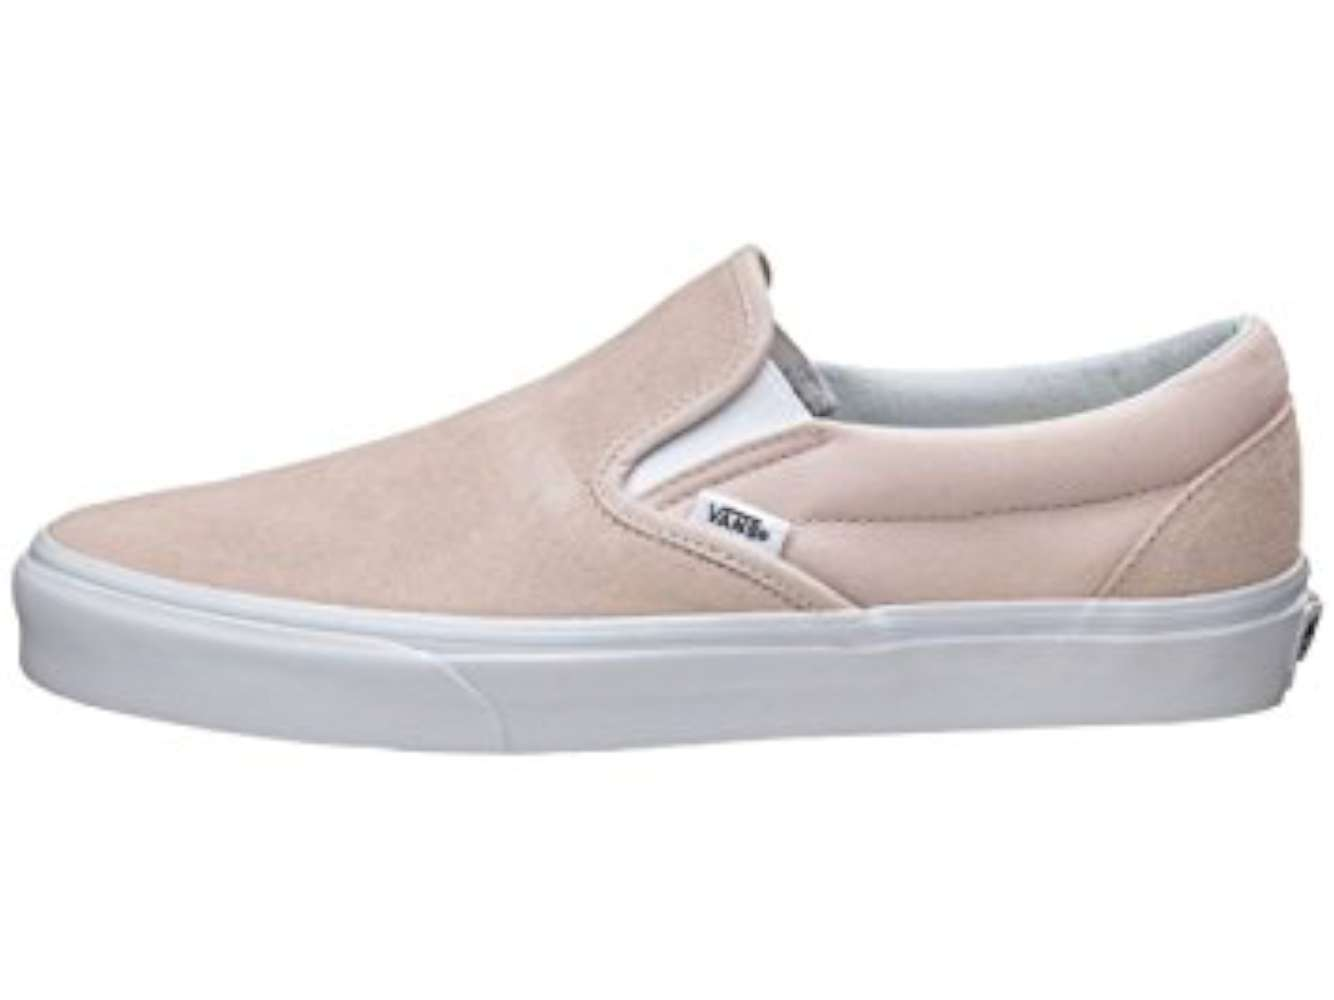 Vans Womens Asher (Perf) Sepi Low Top Slip On Fashion Sneakers rose Size 5.0 c